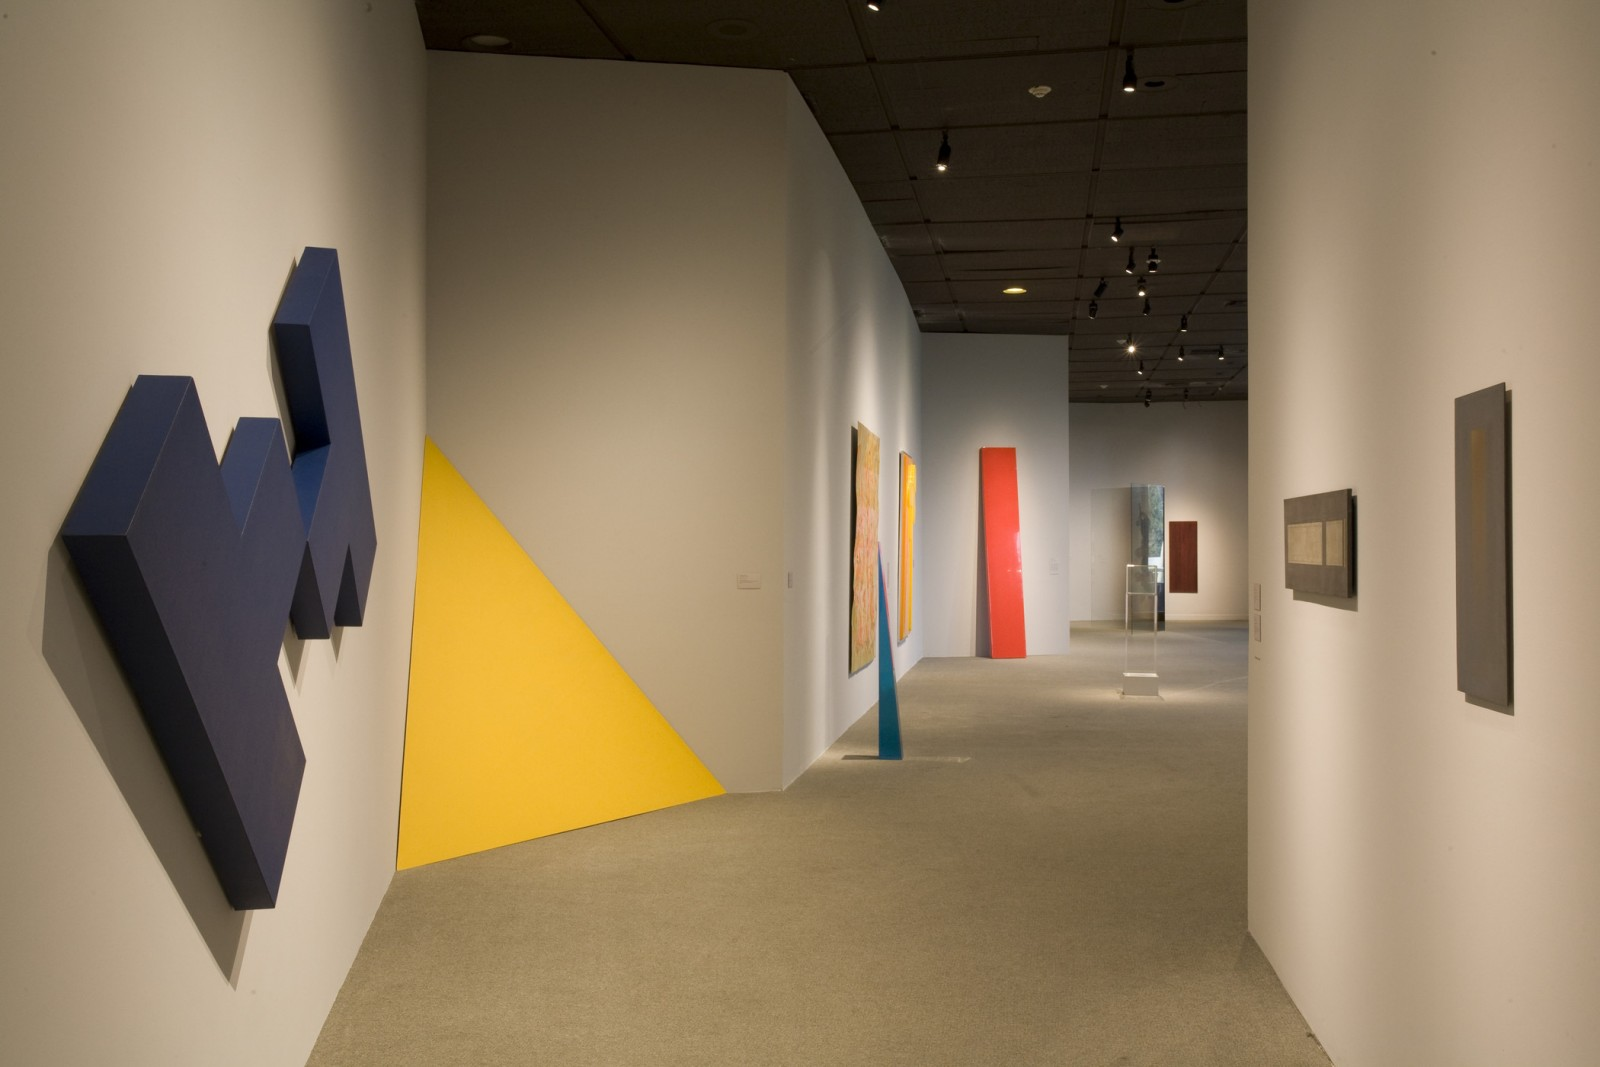 Image: Installation View of SoCal: Southern California Art of the 1960s and 70s from LACMA's Collection